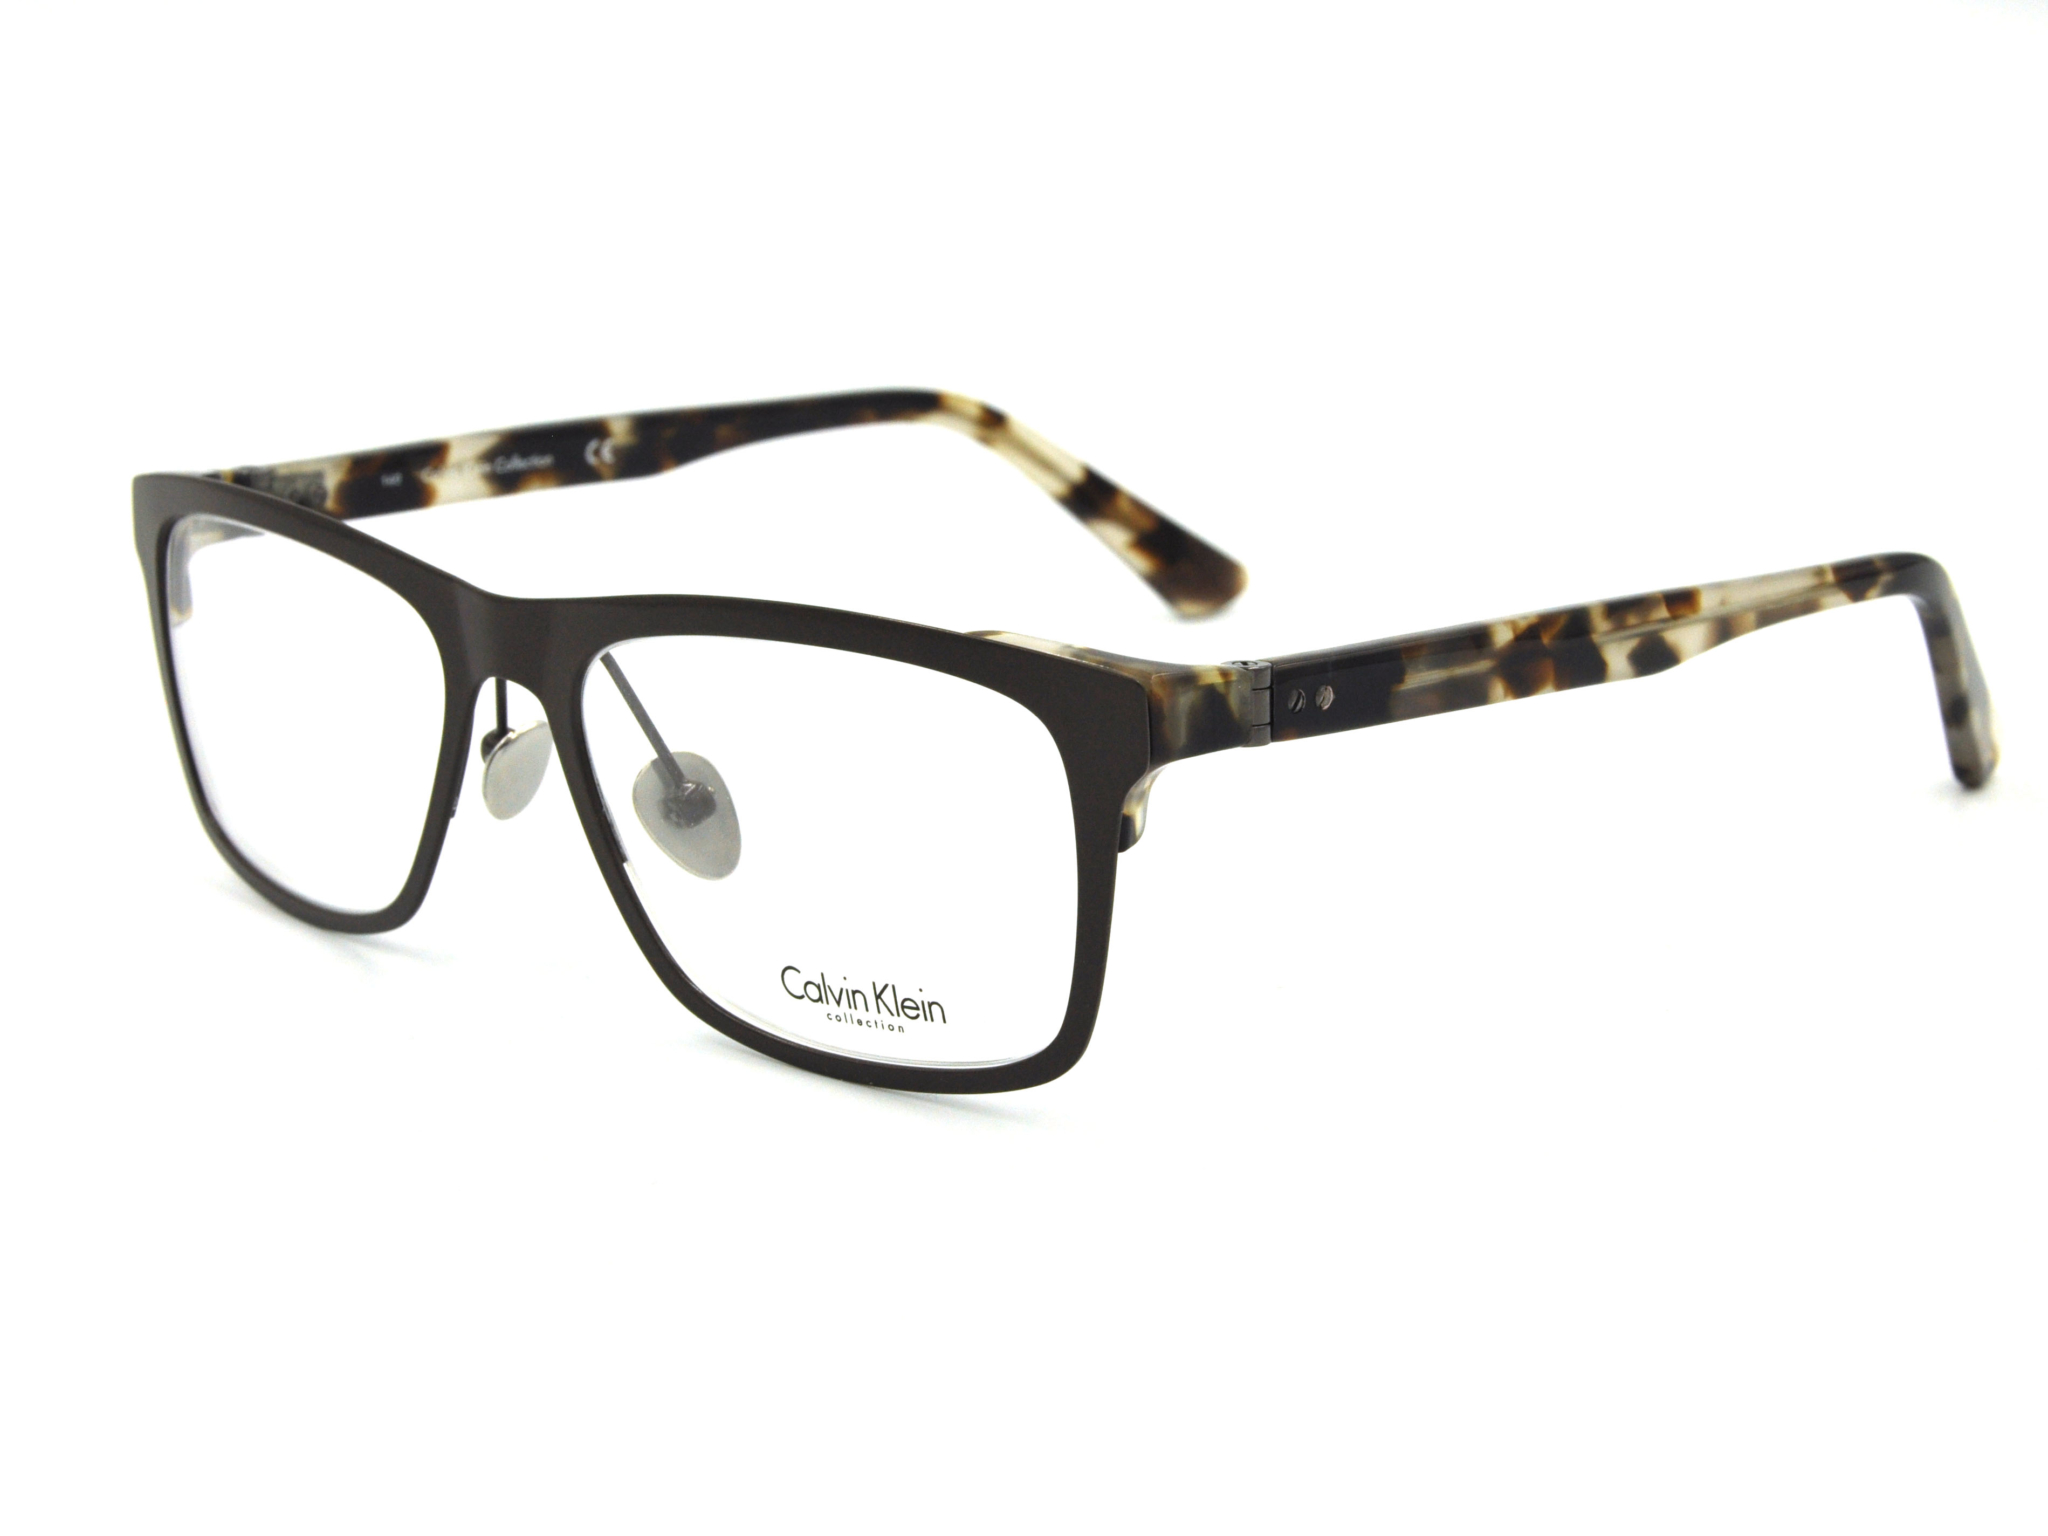 CALVIN KLEIN CK8025 223 UNISEX Prescription Glasses 2020